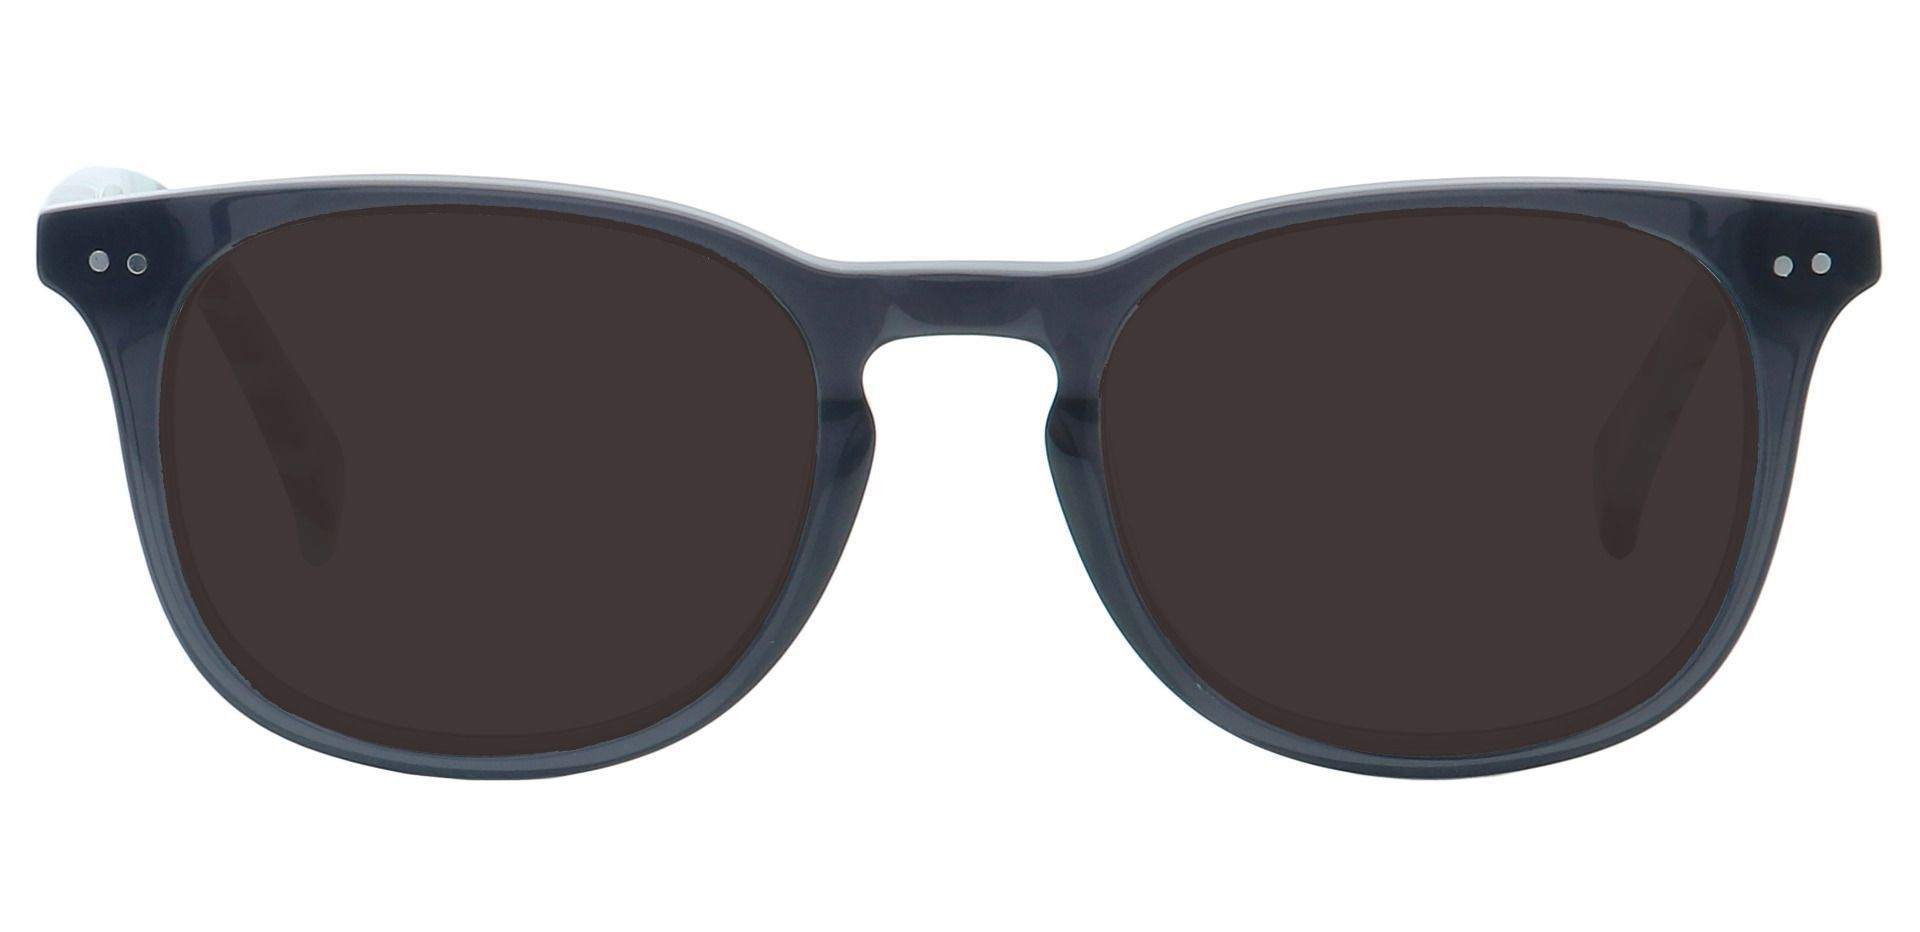 Marble Oval Prescription Sunglasses - Gray Frame With Gray Lenses